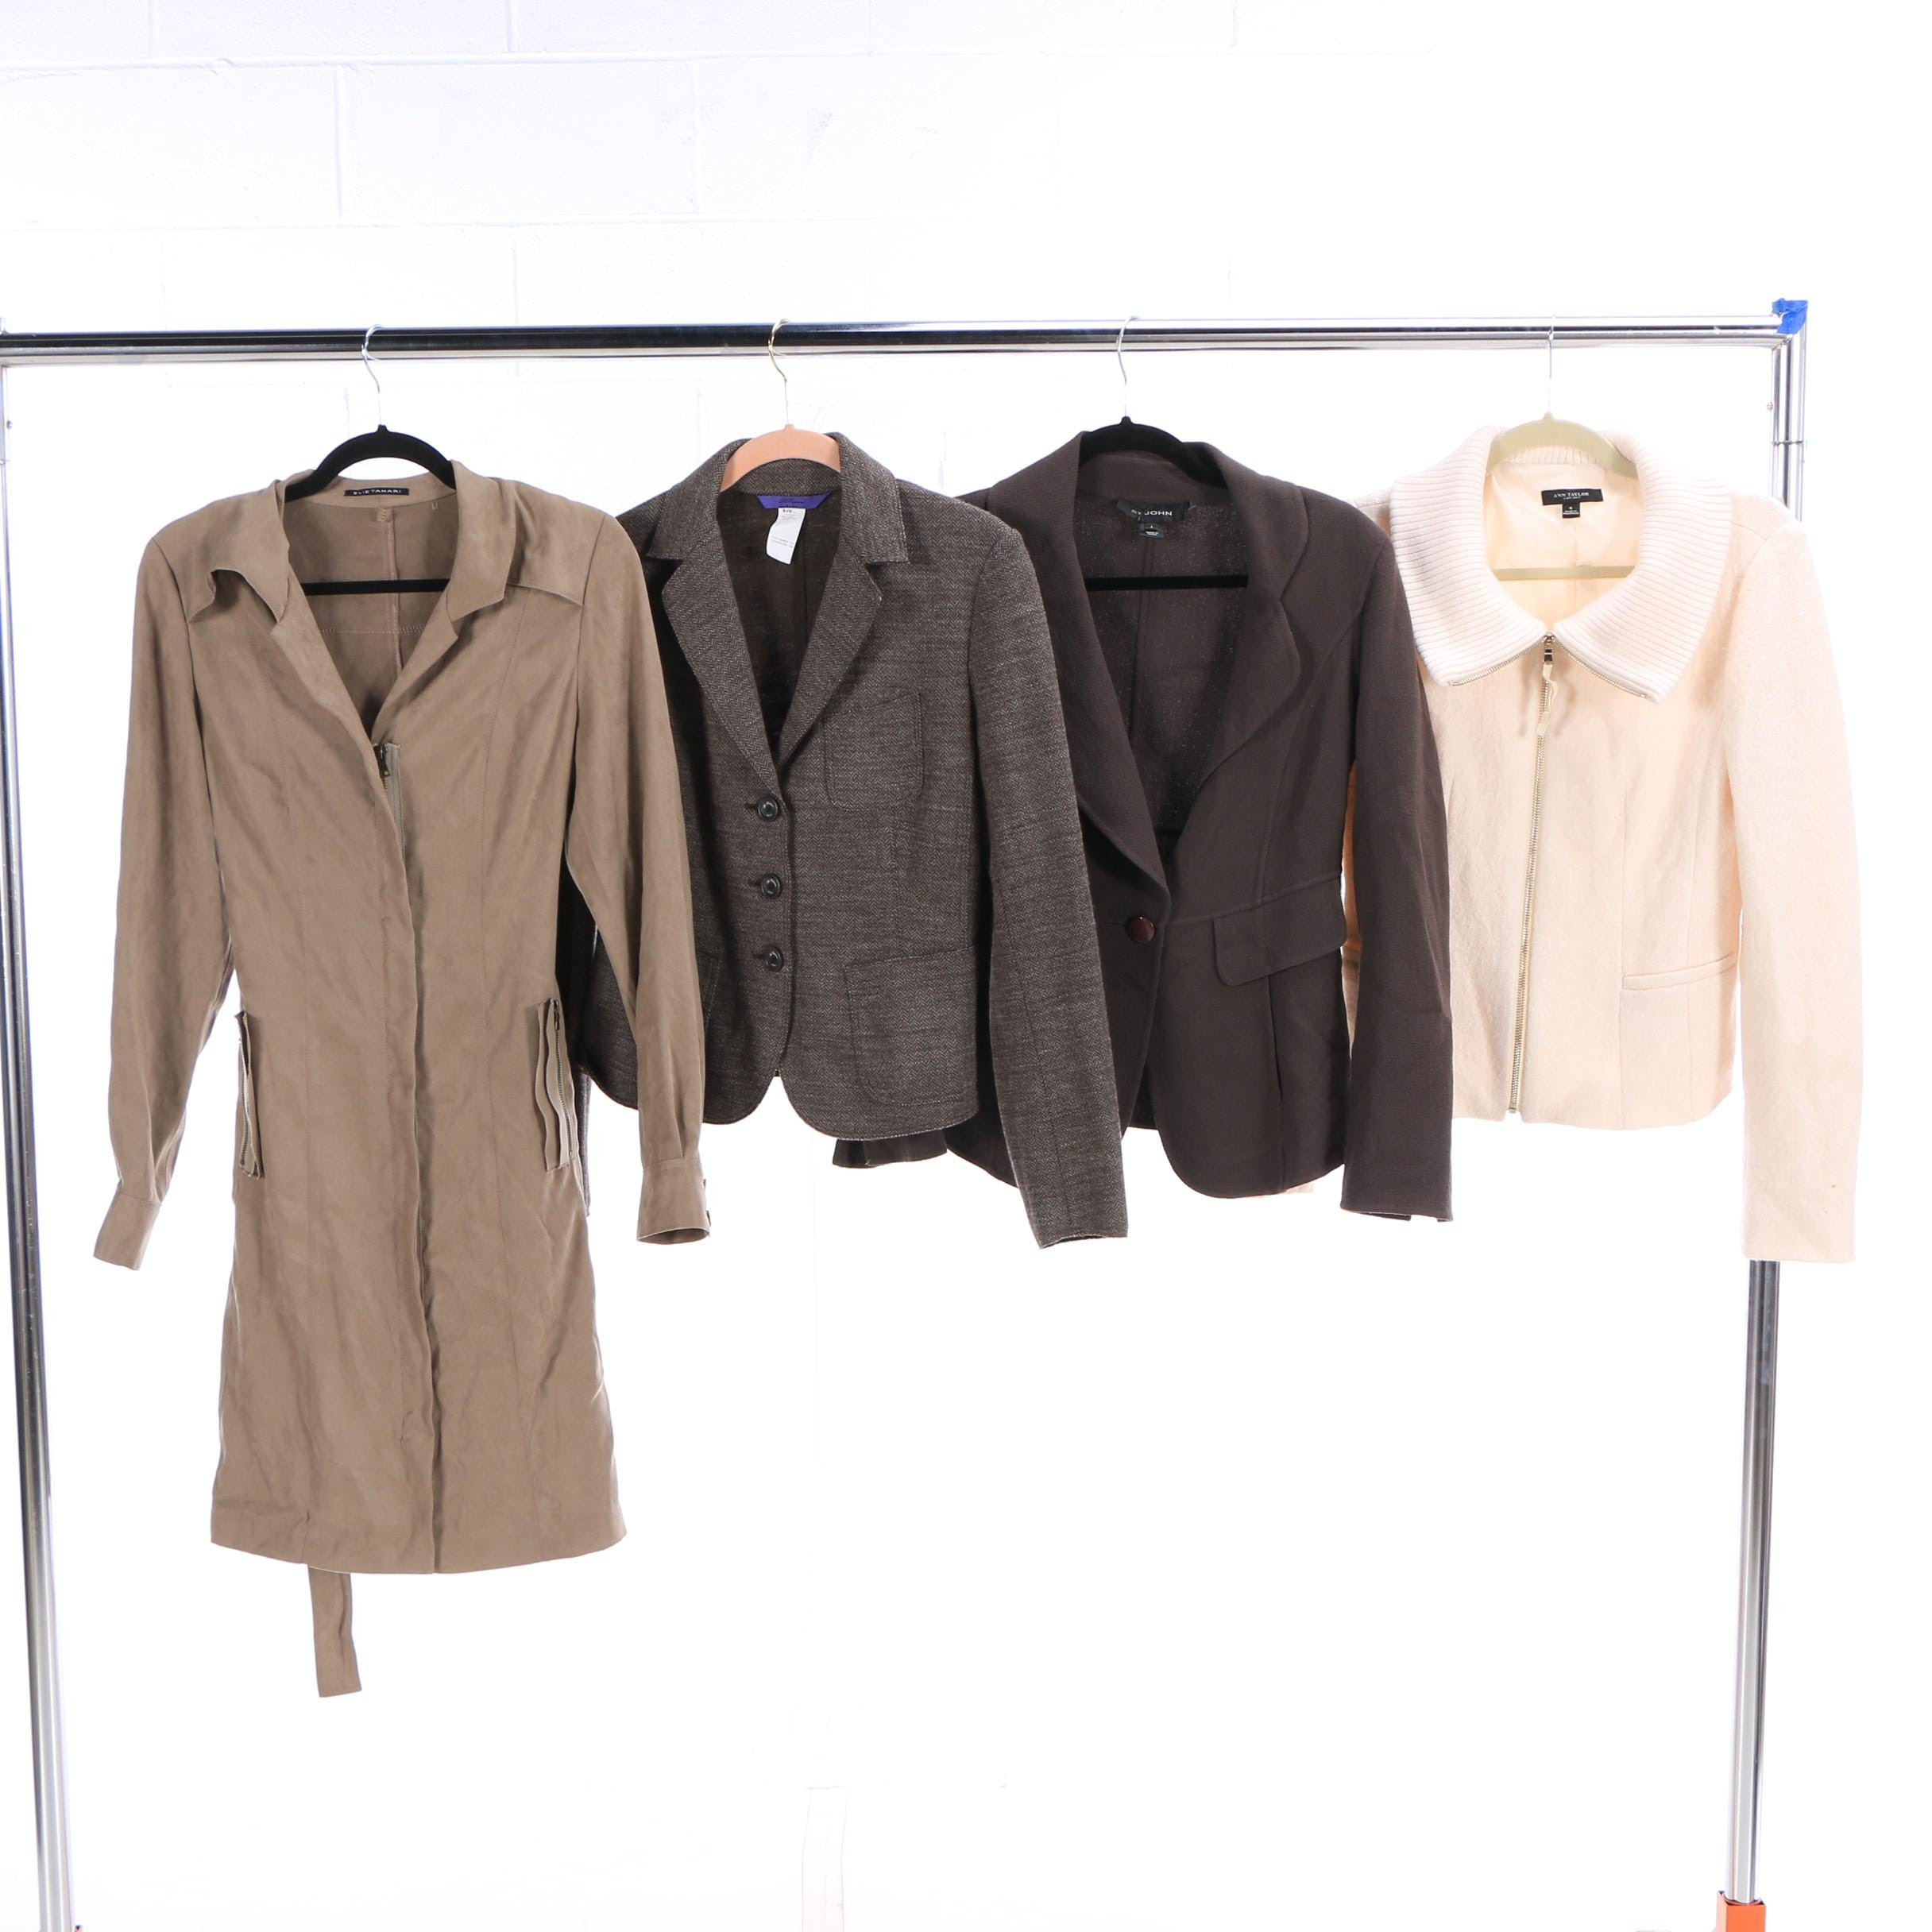 Women's Outerwear and Blazers Including St. John and Elie Tahari